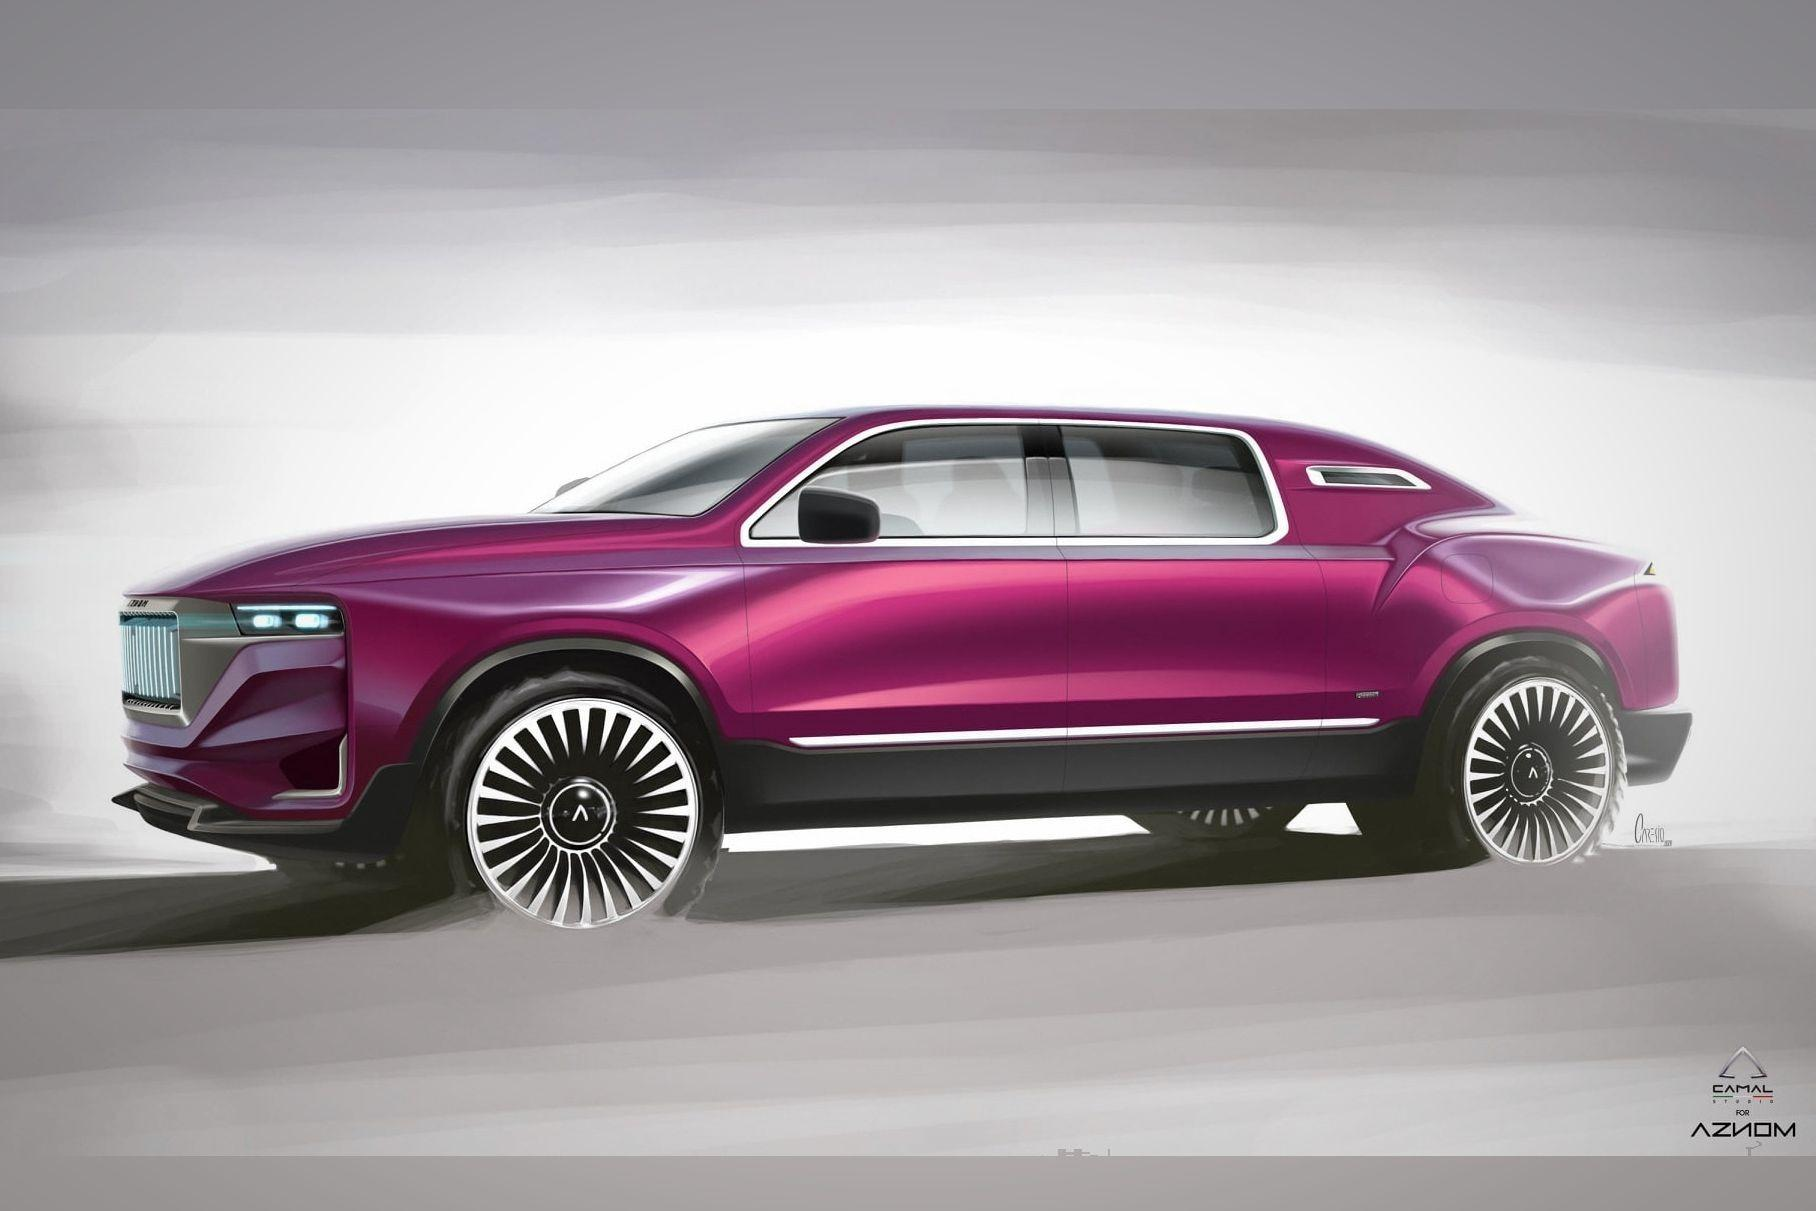 Auto tune-up shop Aznom Automotive has joined efforts with Camal Studio to design and produce a new off-road capable luxury limo, the Aznom Palladium. The production car is coming up in September, the company reports.